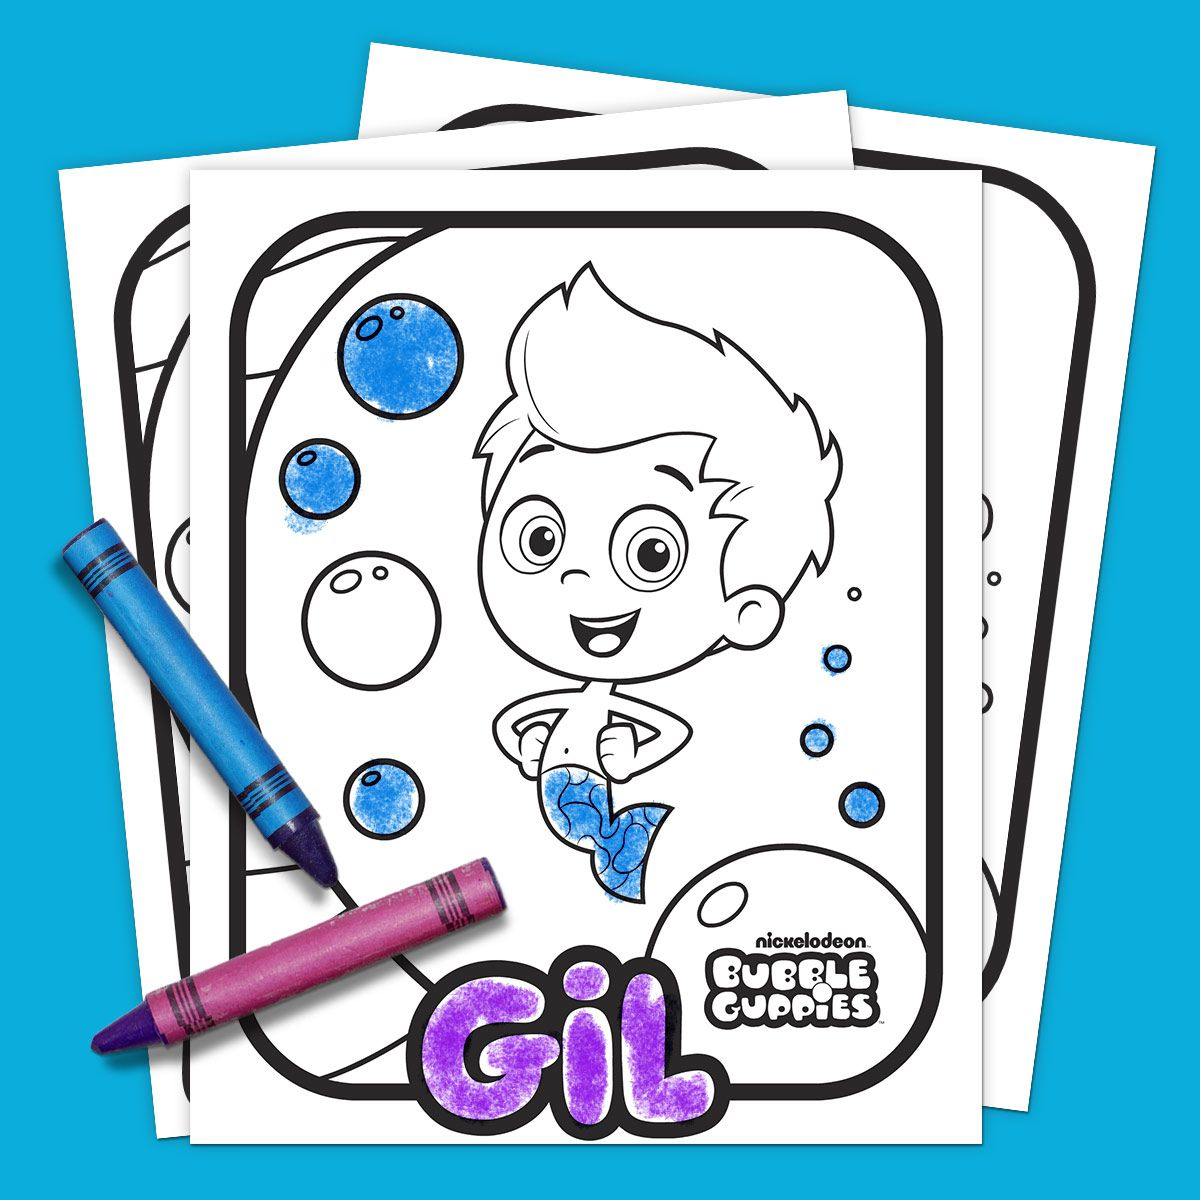 Bubble Guppies Coloring Pack | Cristian, Celebracion y Colorear